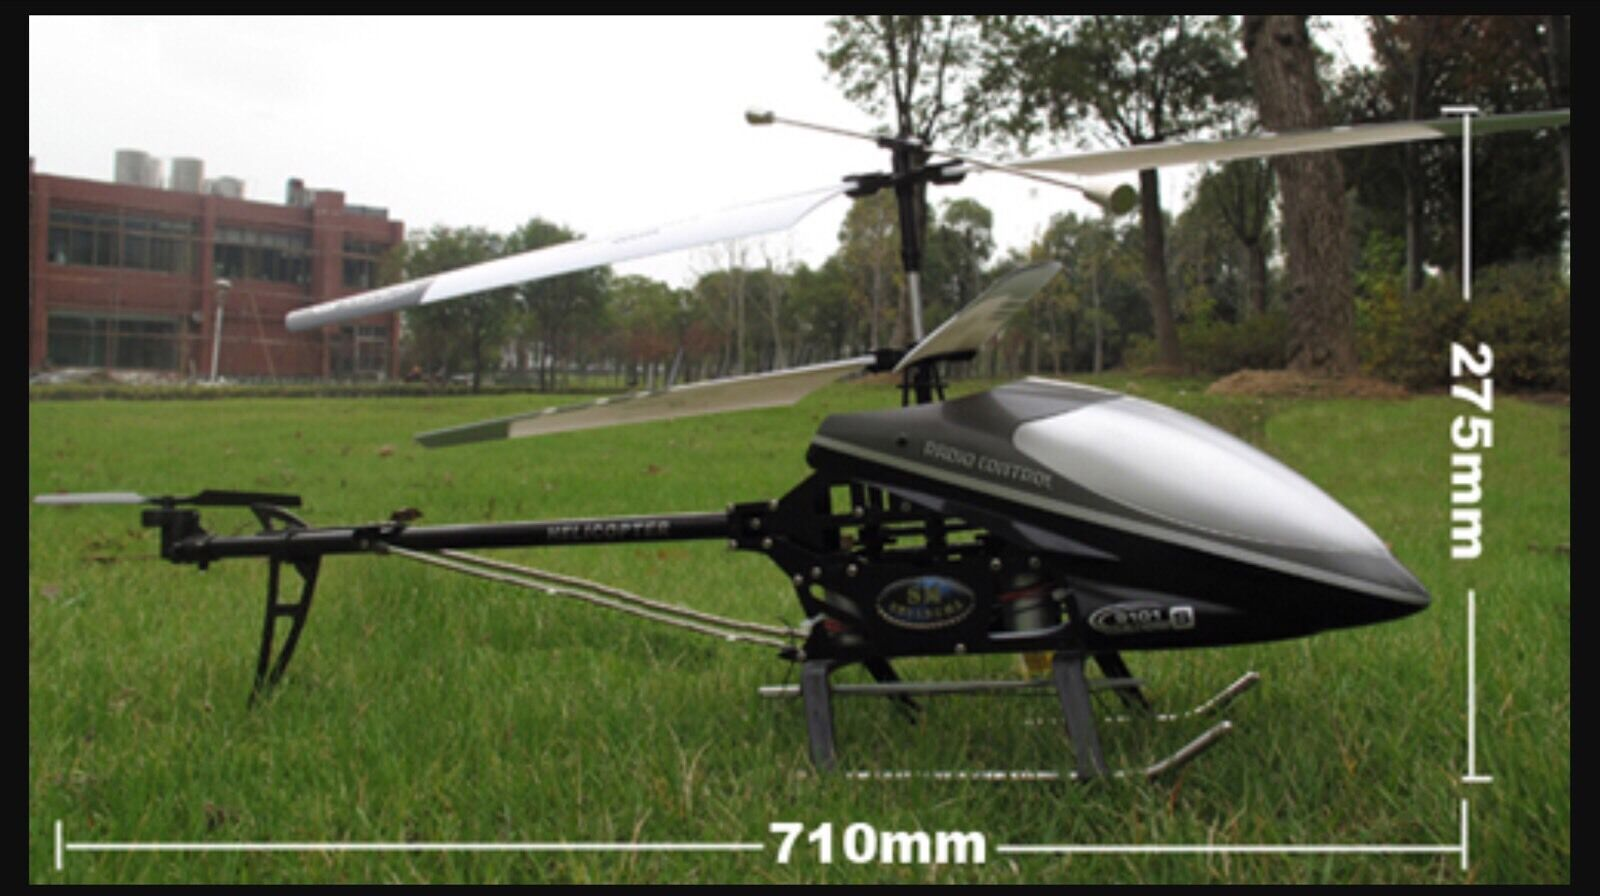 NEW DOUBLE HORSE 9101 3.5CH 3.5CH 3.5CH HUGE REMOTE CONTROL HELICOPTER BUILT IN GYRO NEW b76218